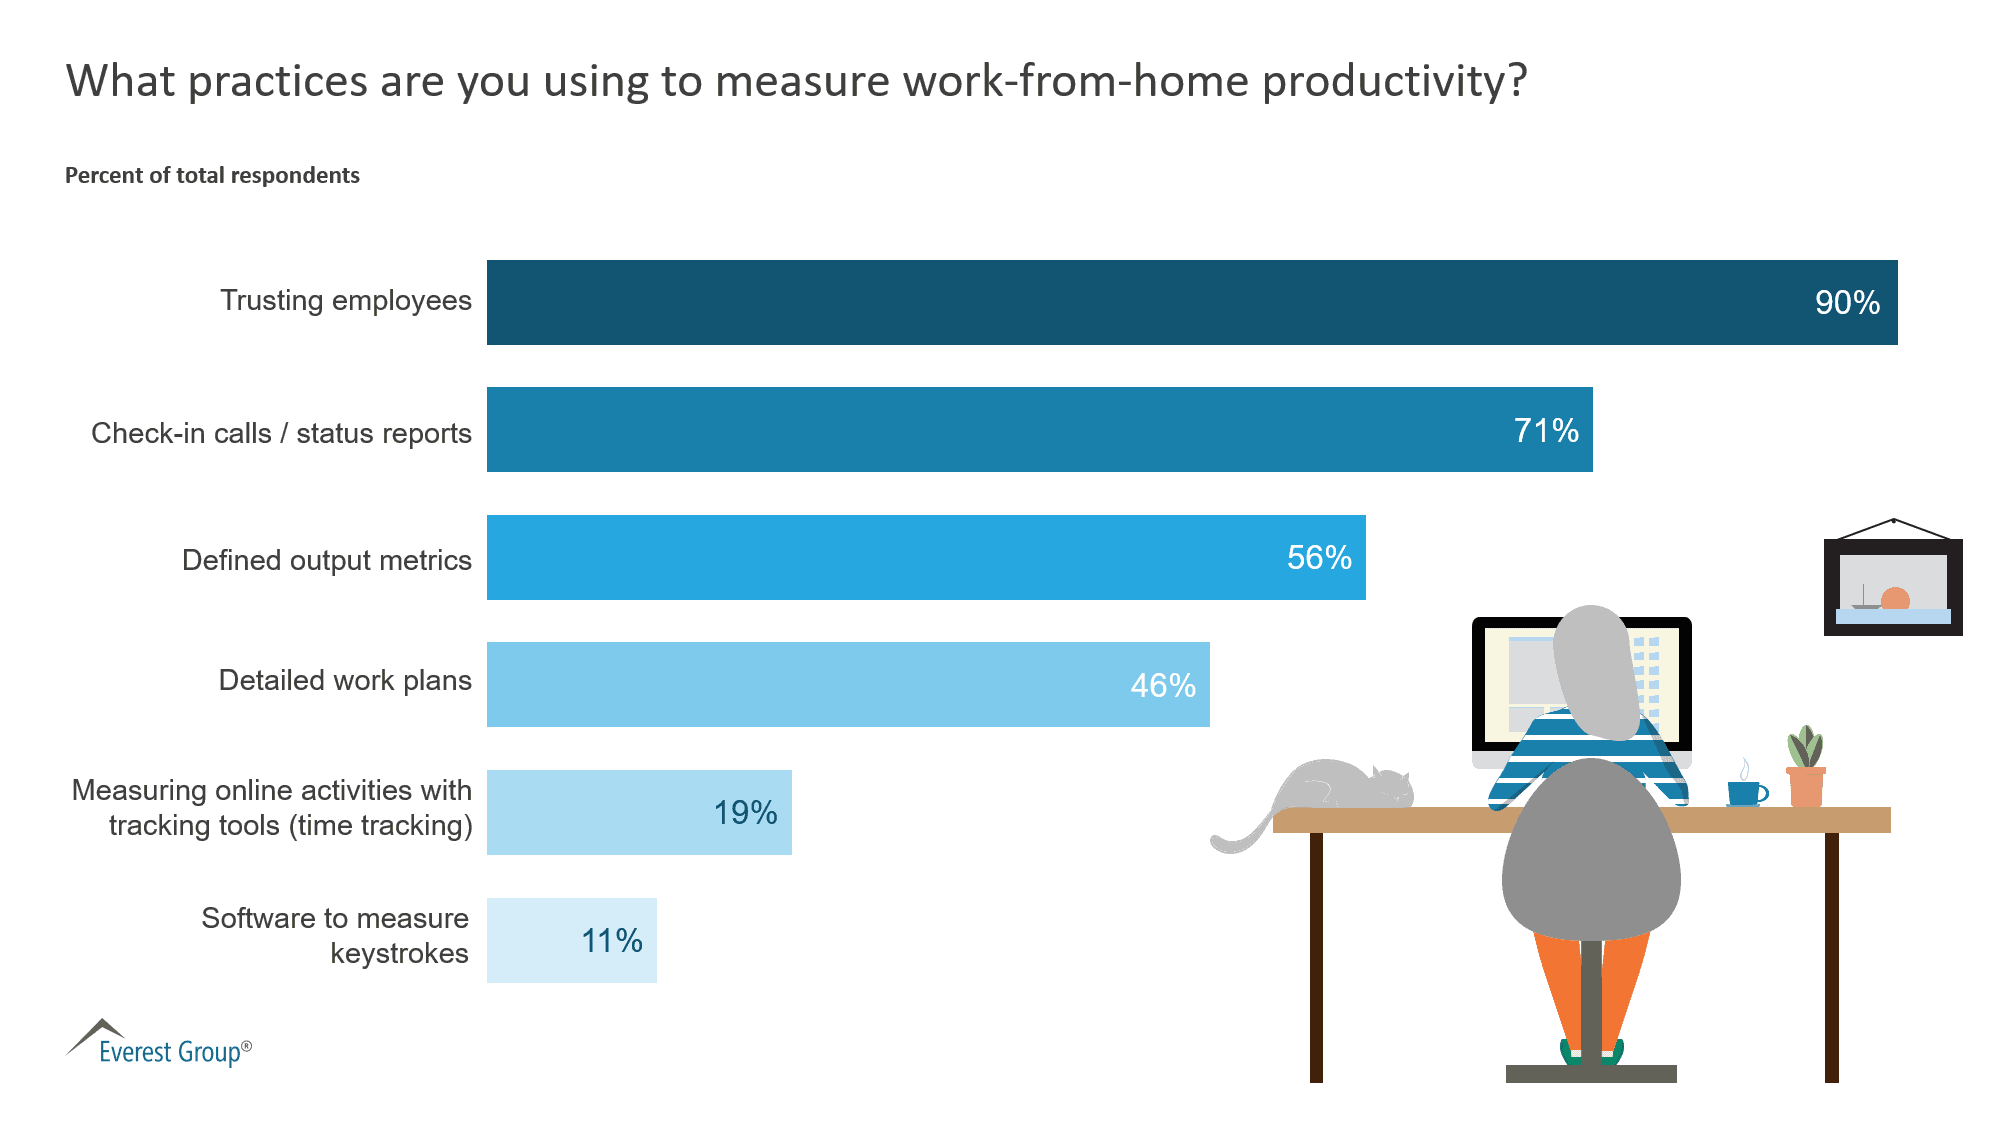 What practices are you using to measure work-from-home productivity?